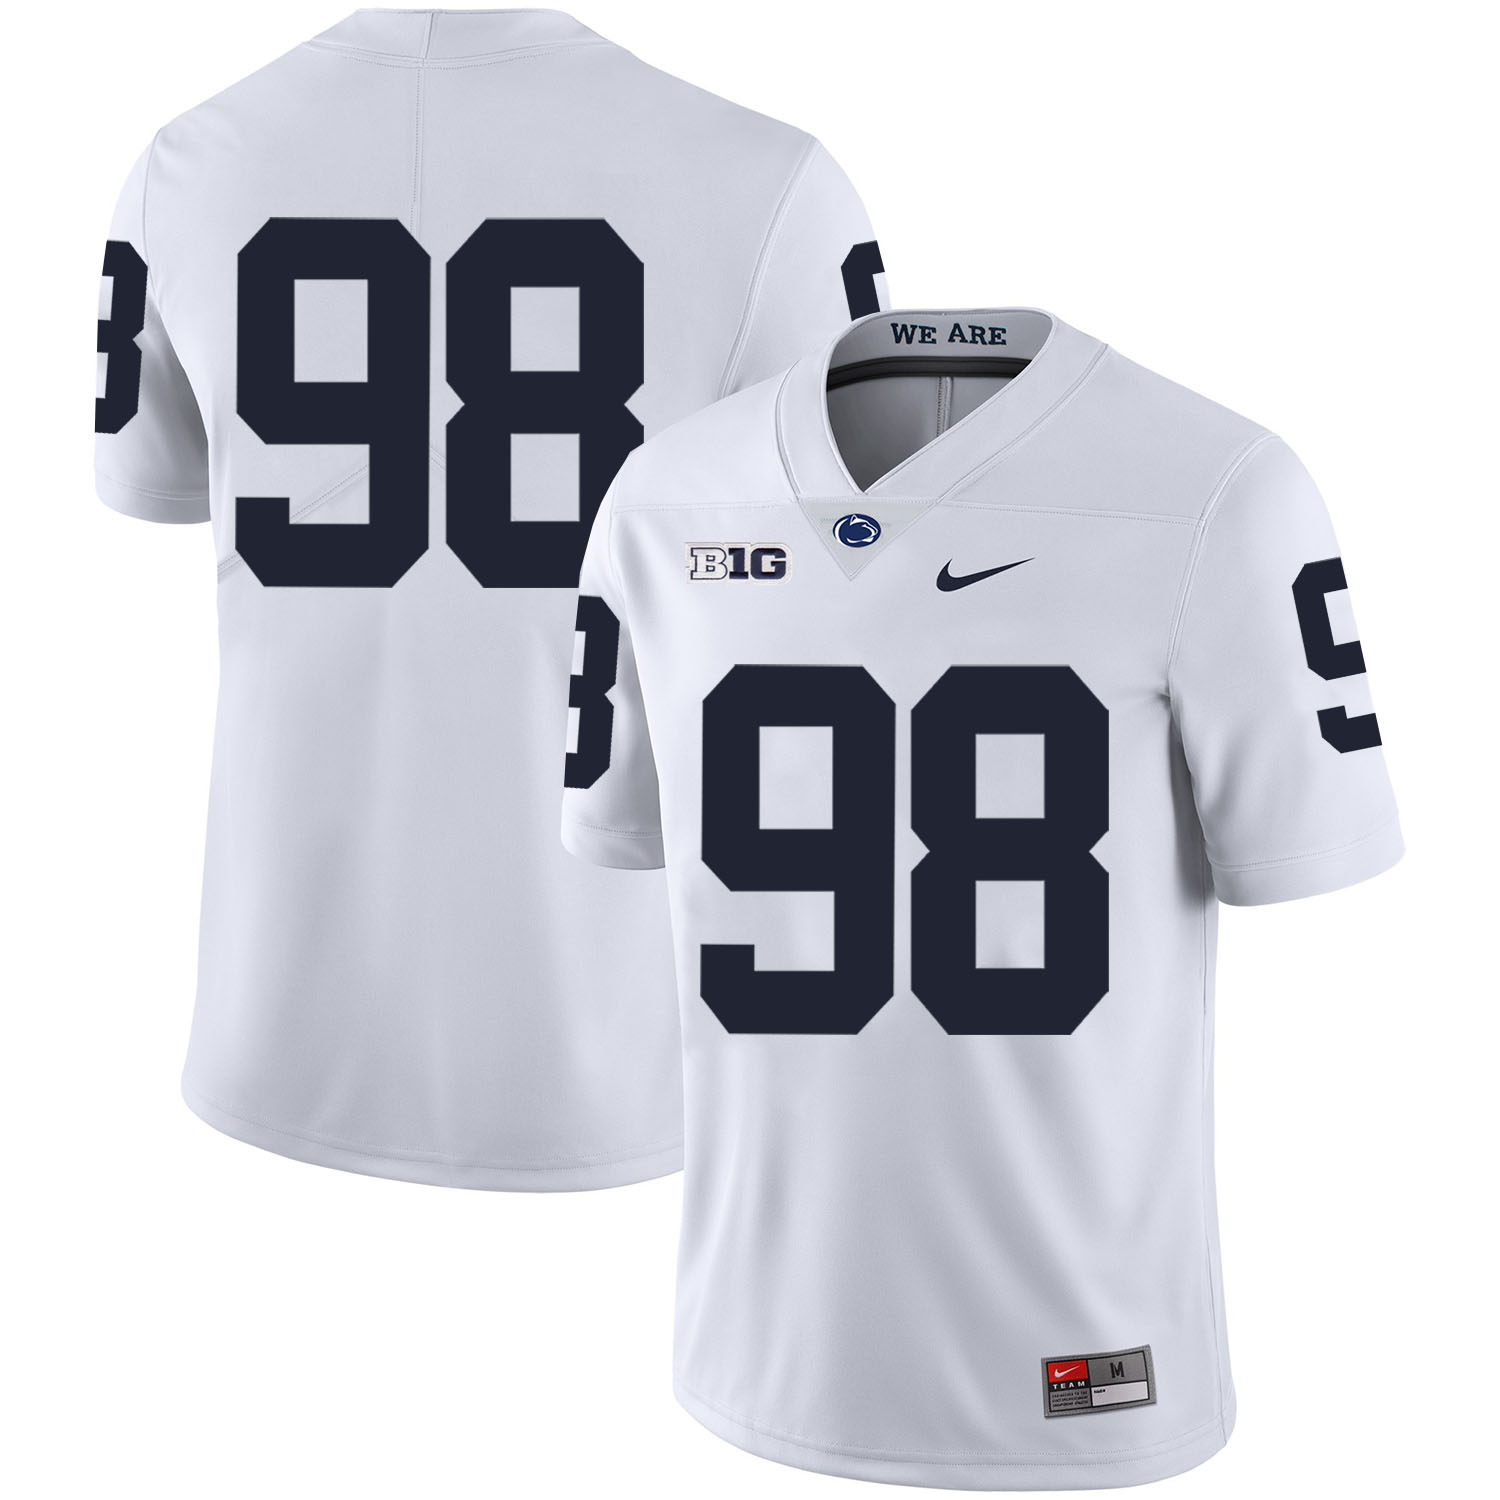 Penn State Nittany Lions 98 Anthony Zettel White Nike College Football Jersey